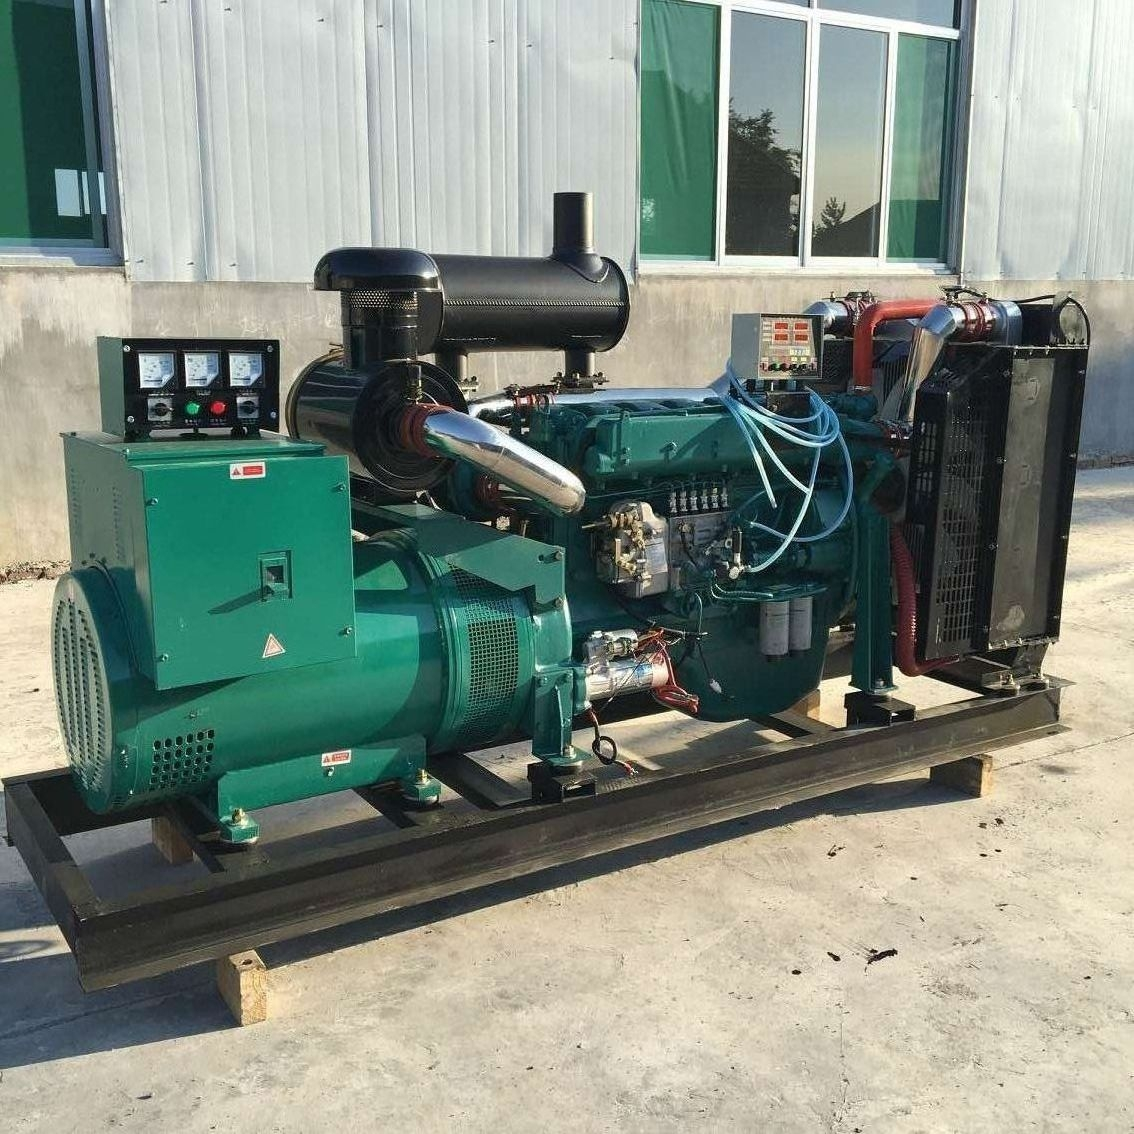 250kva diesel generator with steyr engines 6126 type construction applicationi